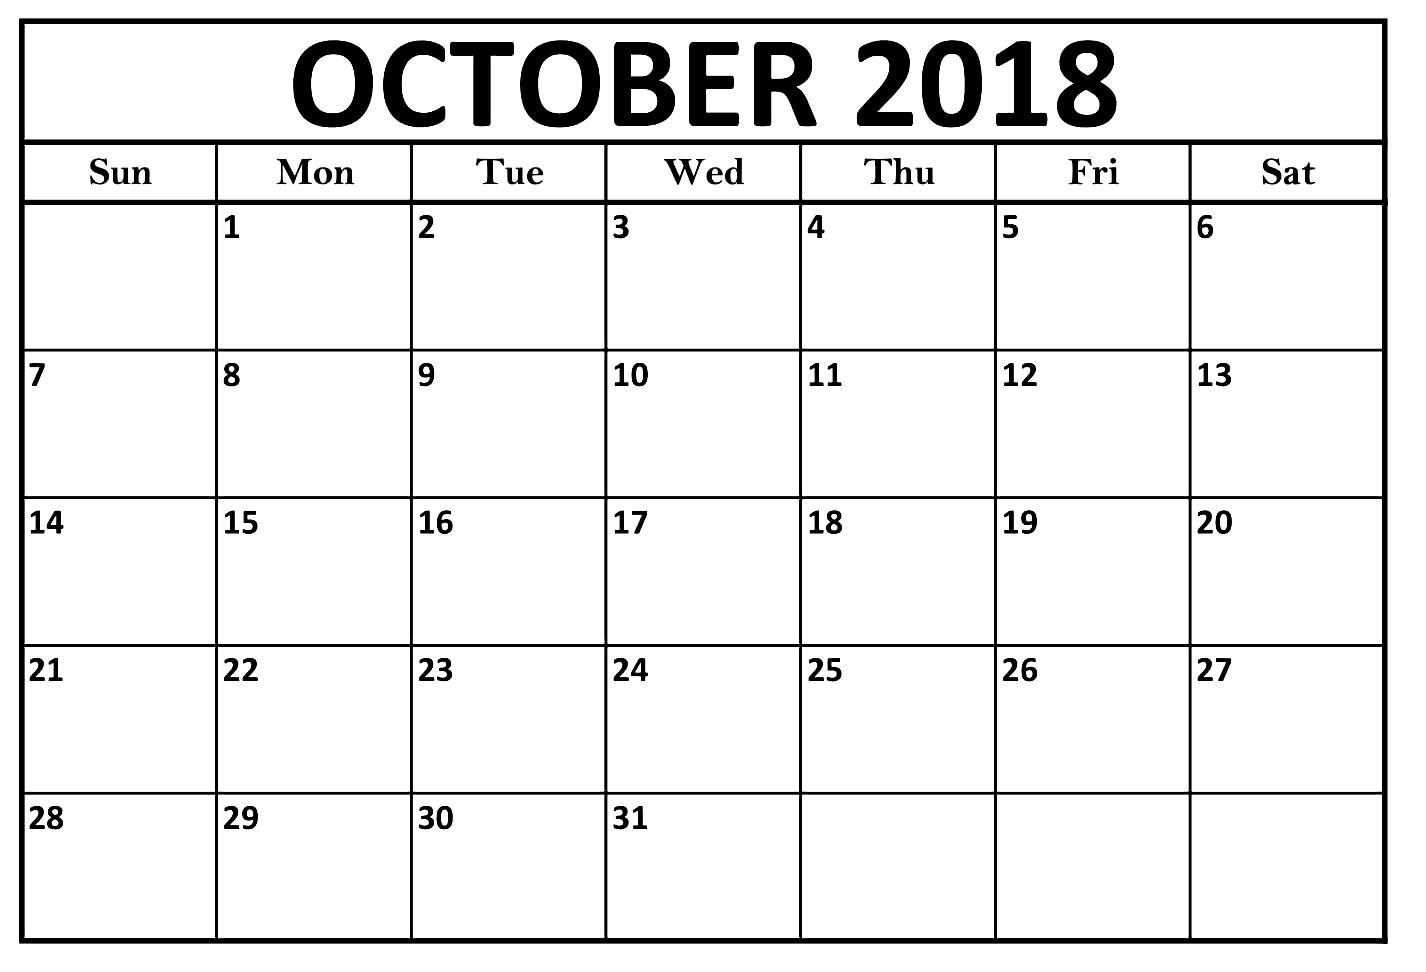 October Calendar 2018 Large Print Template (With Images